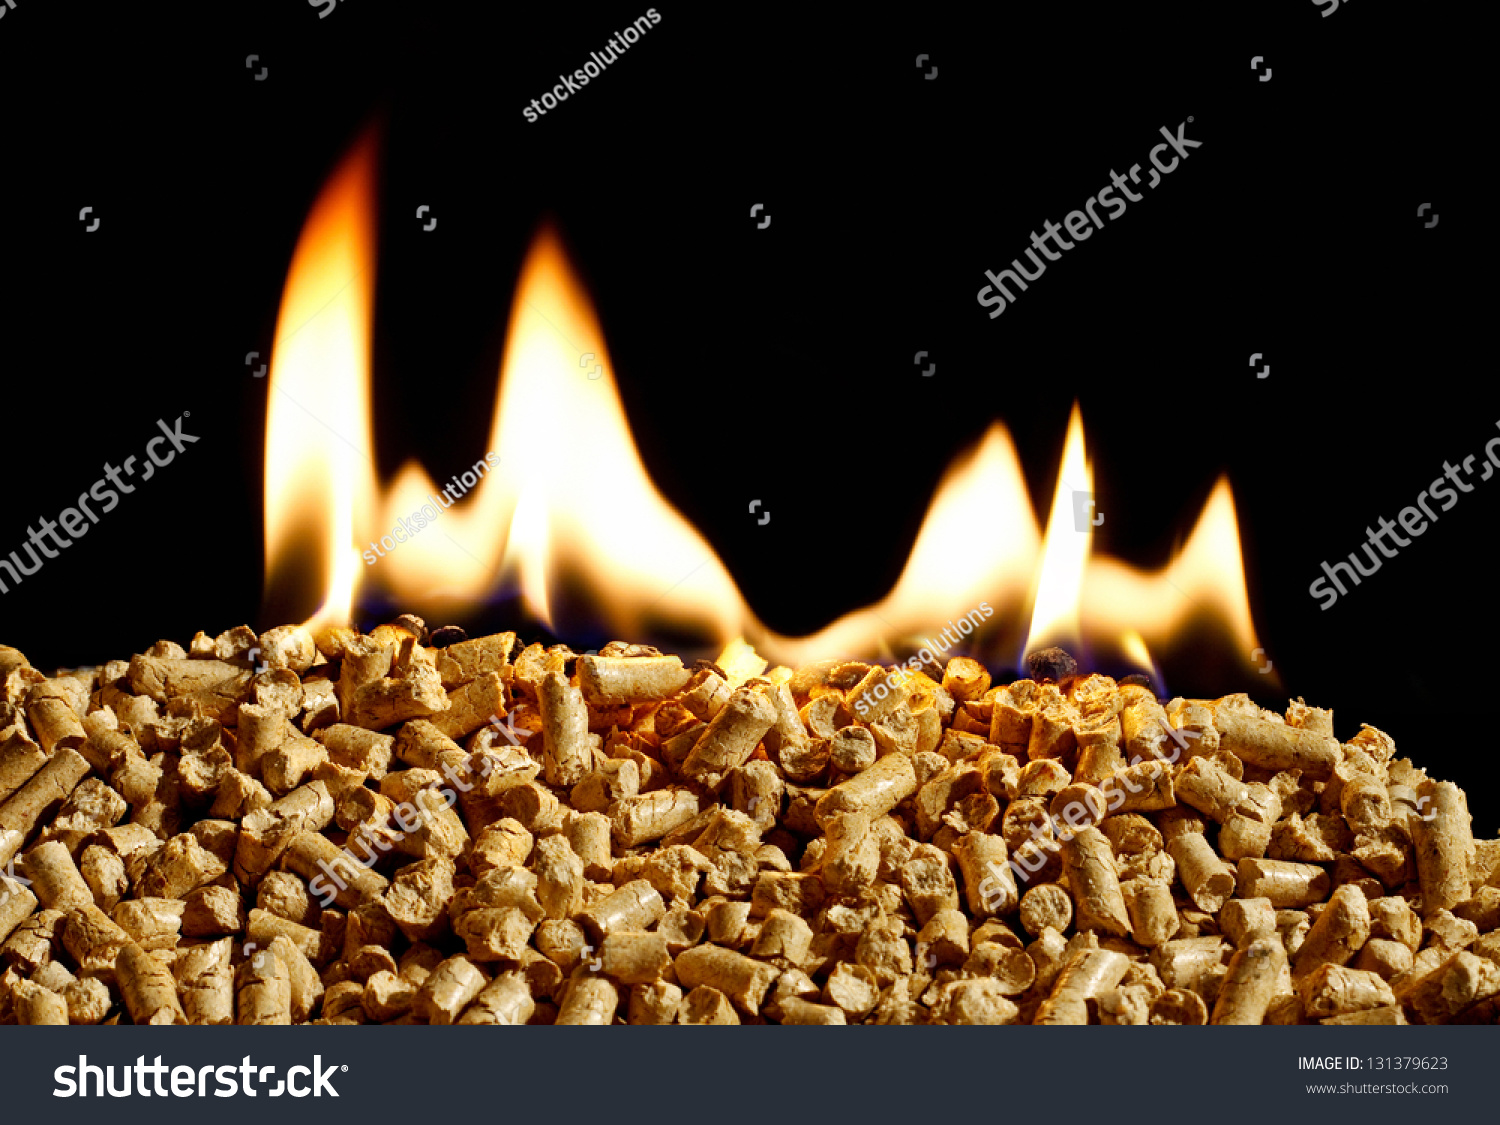 Burning wood chip pellets a renewable source of energy